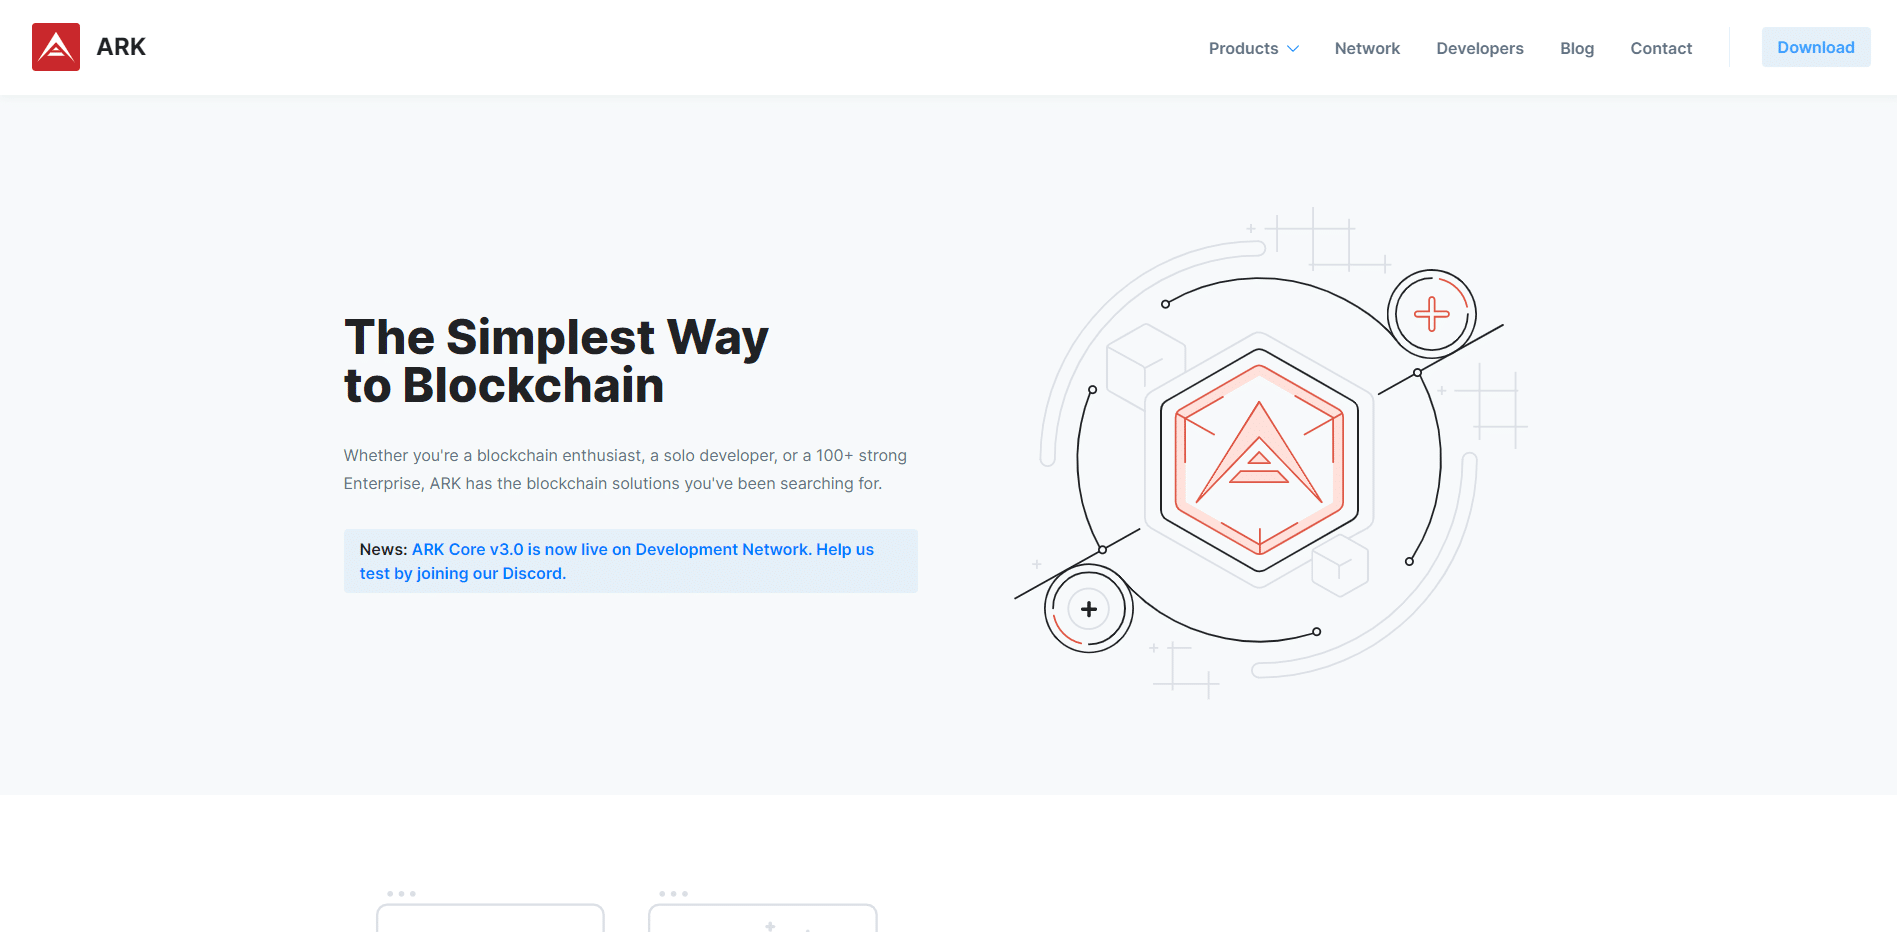 ARK Crypto website